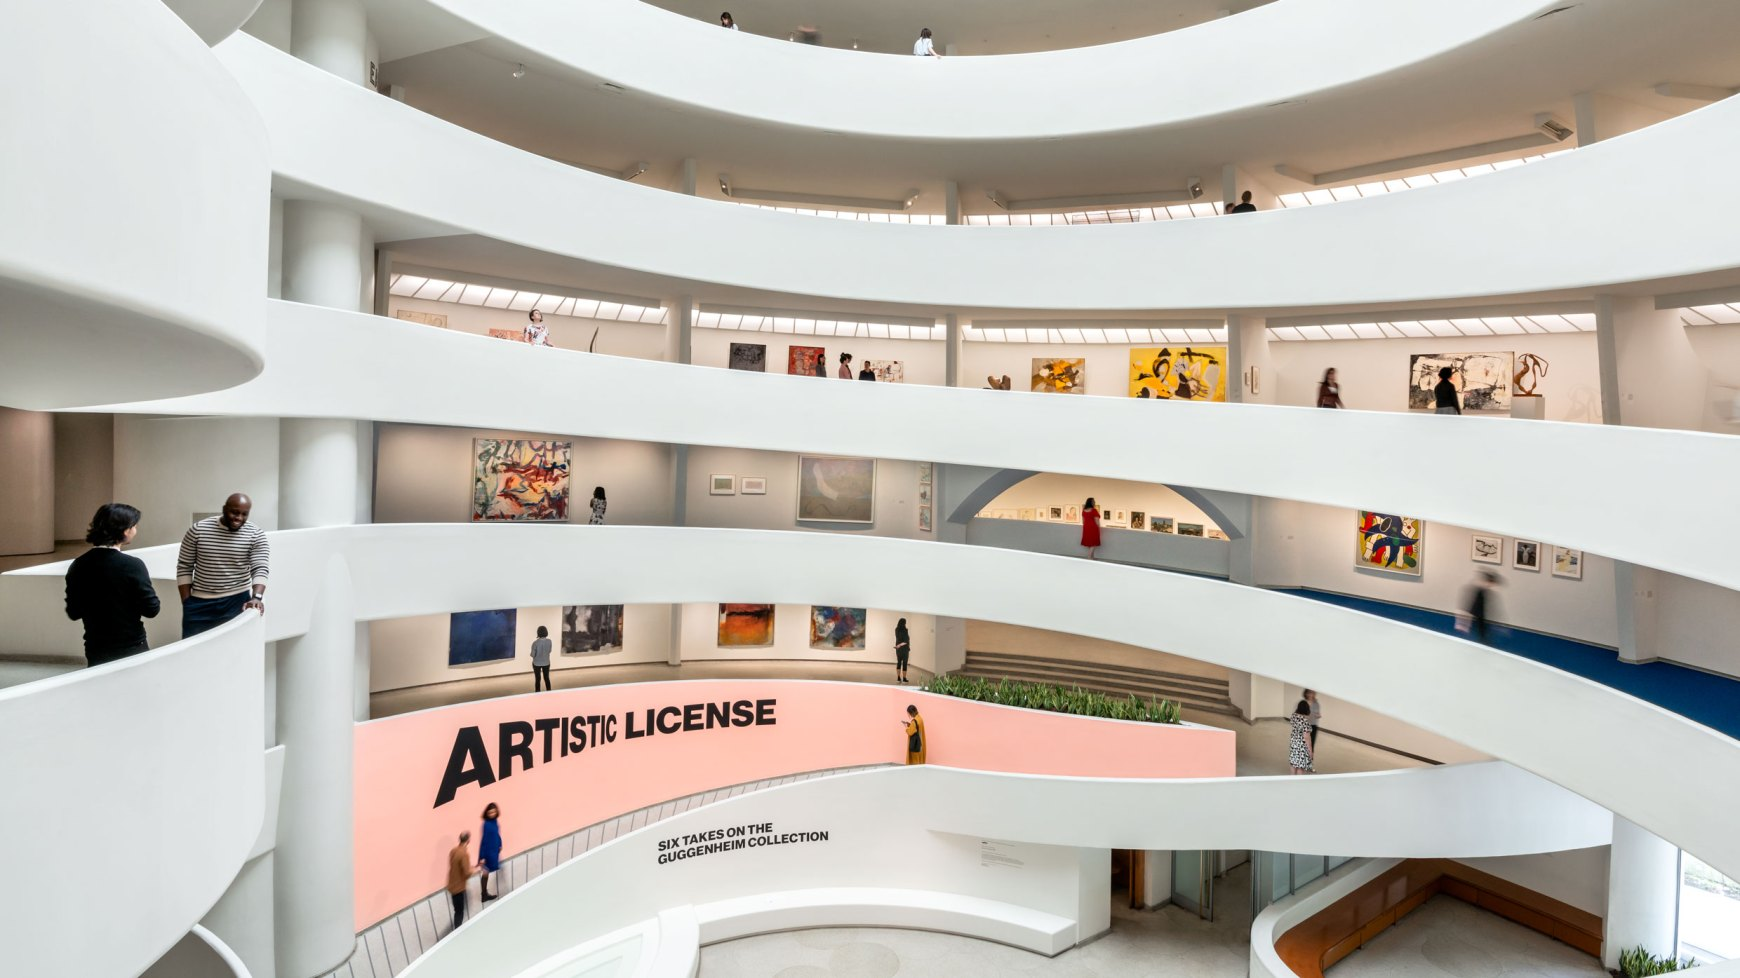 Visitors looking at art inside the Guggenheim Museum